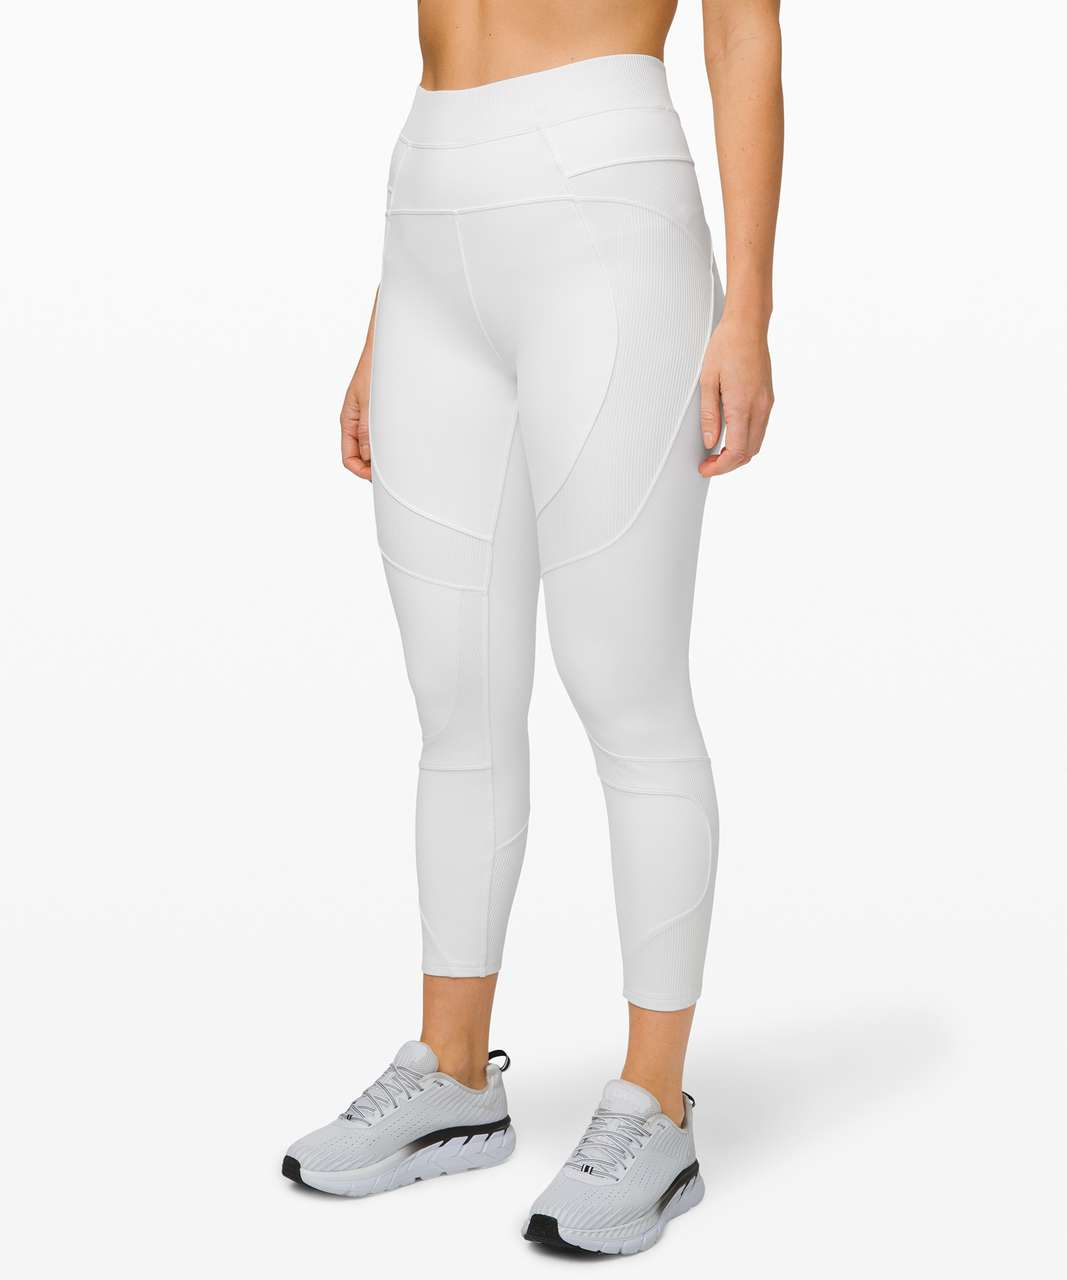 "Lululemon New Ambition Super High-Rise Tight 28"" - White"